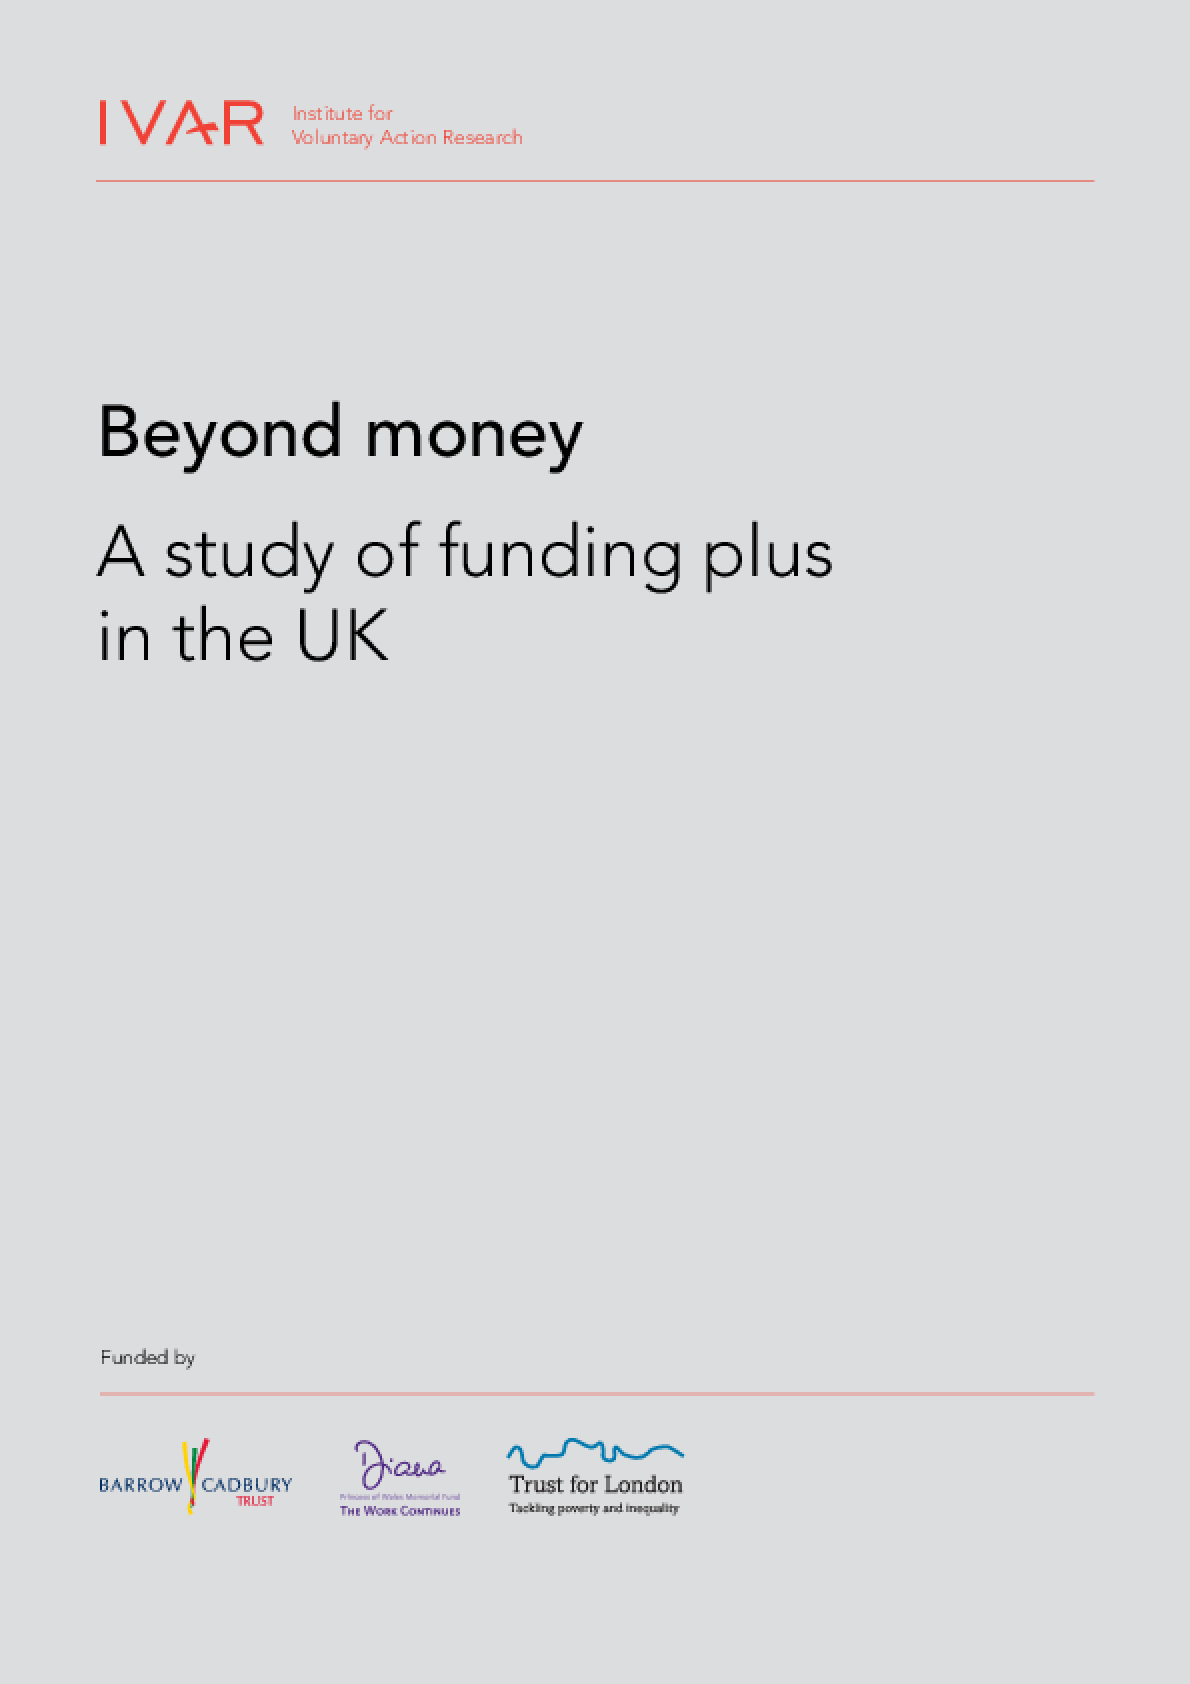 Beyond Money: A Study of Funding Plus in the UK